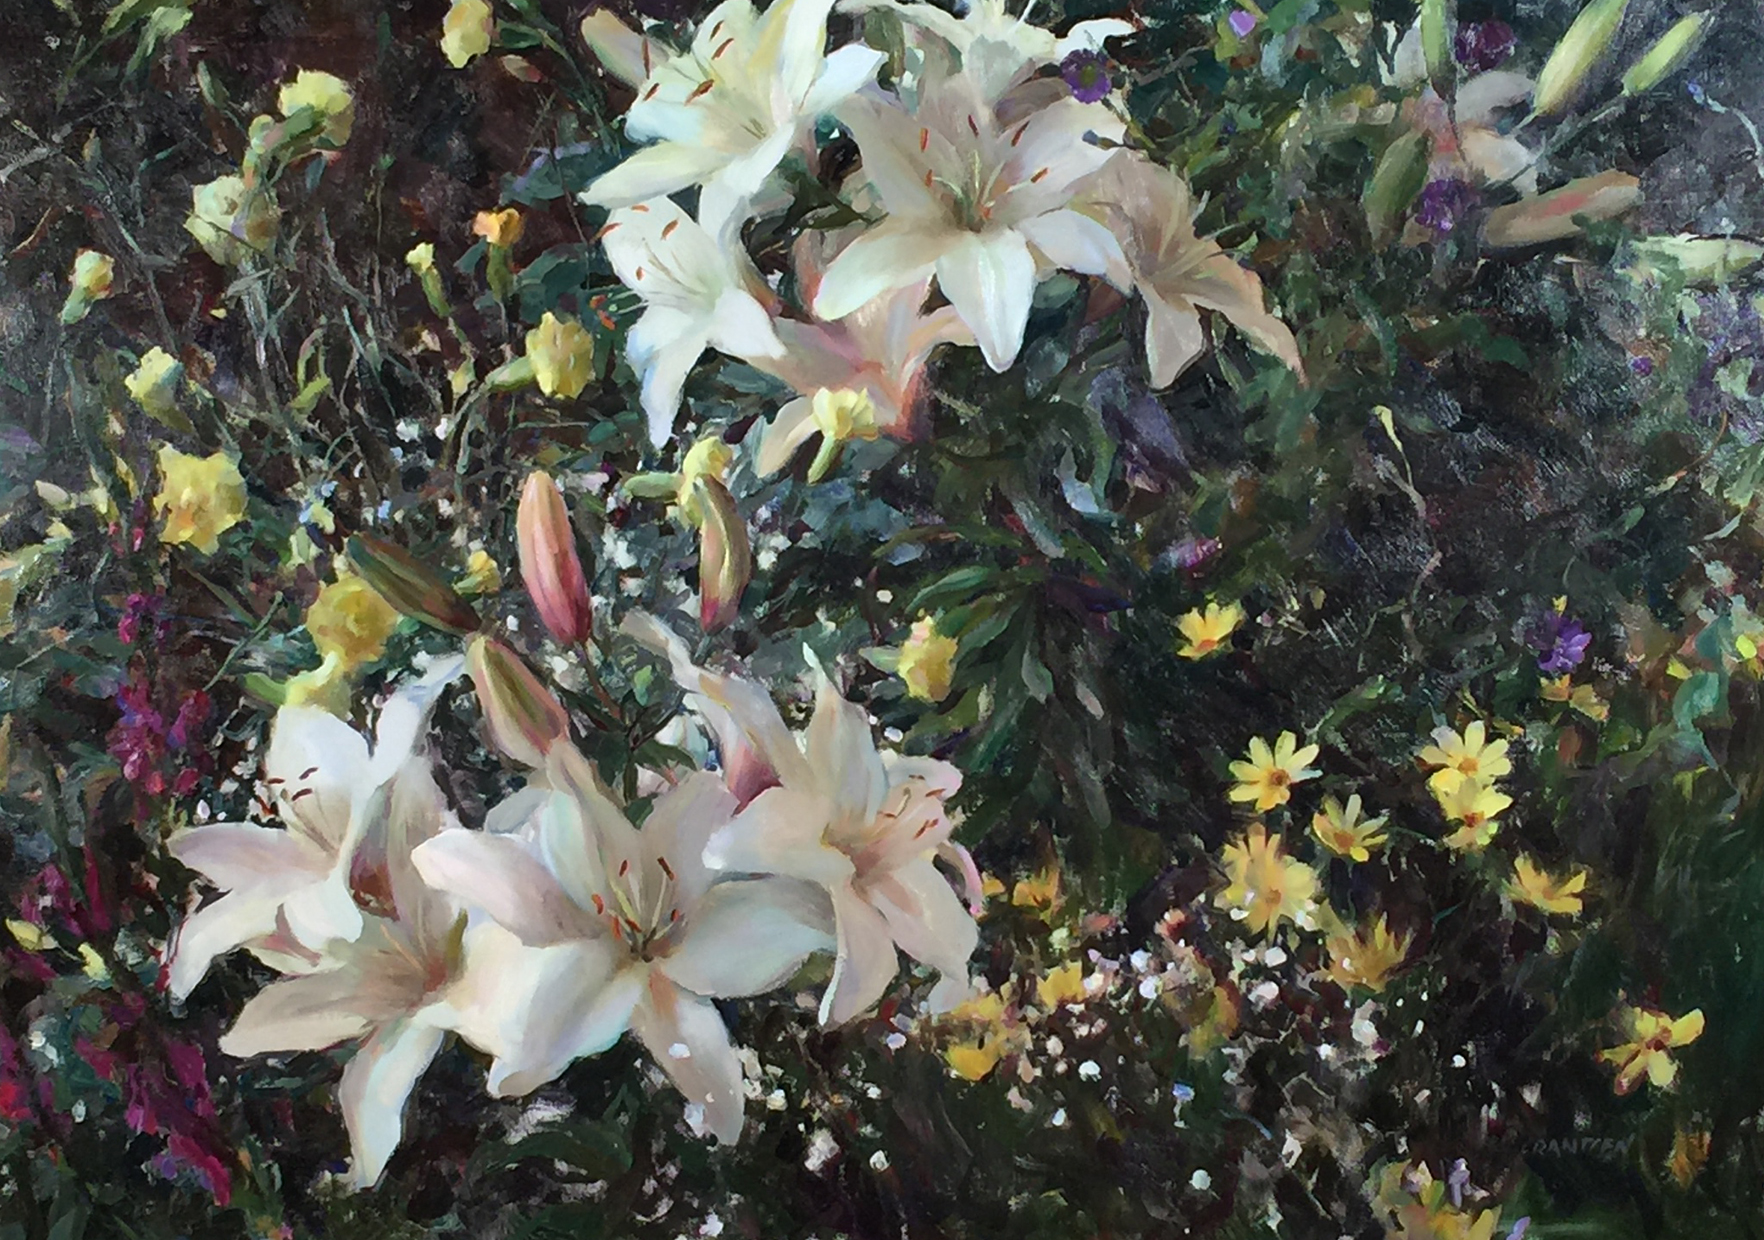 Rose Frantzen, White Lilies, n.d., oil on canvas, 23 3/4 x 33 1/2 inches, Gift of Dr. Randall Lengeling, 2015.25